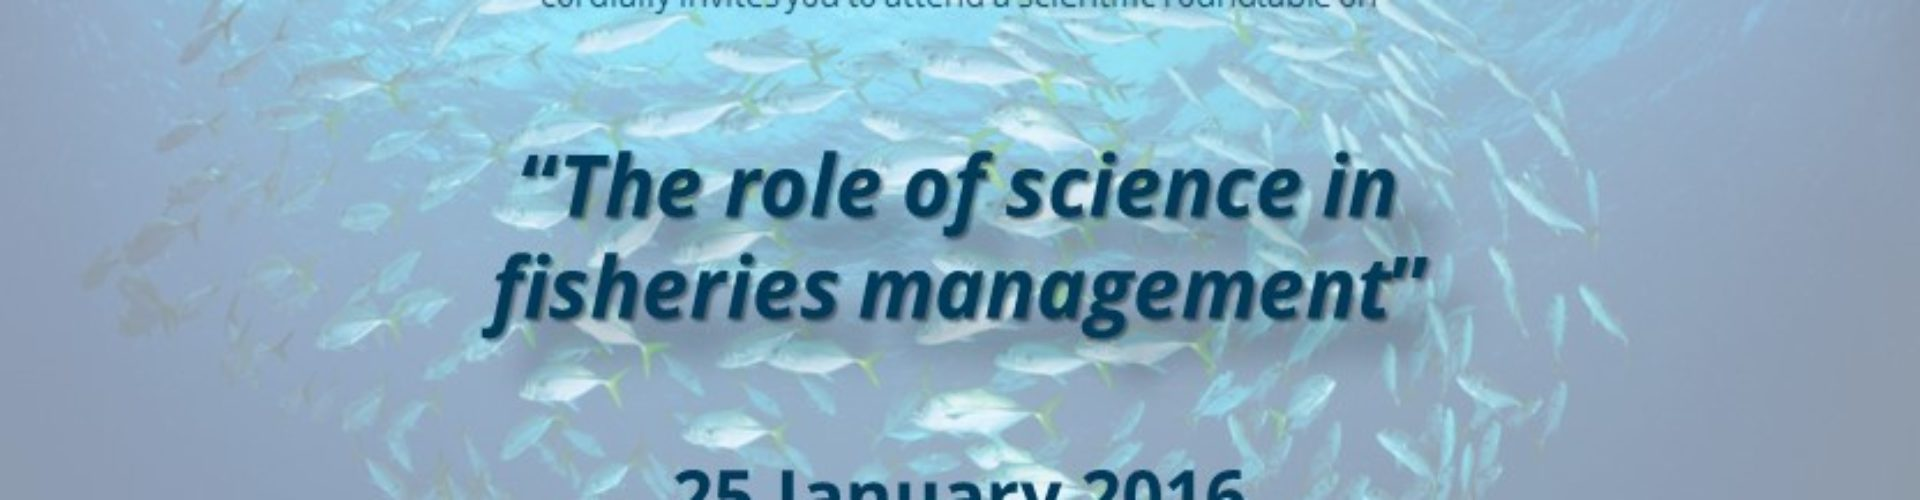 The role of science in fisheries management